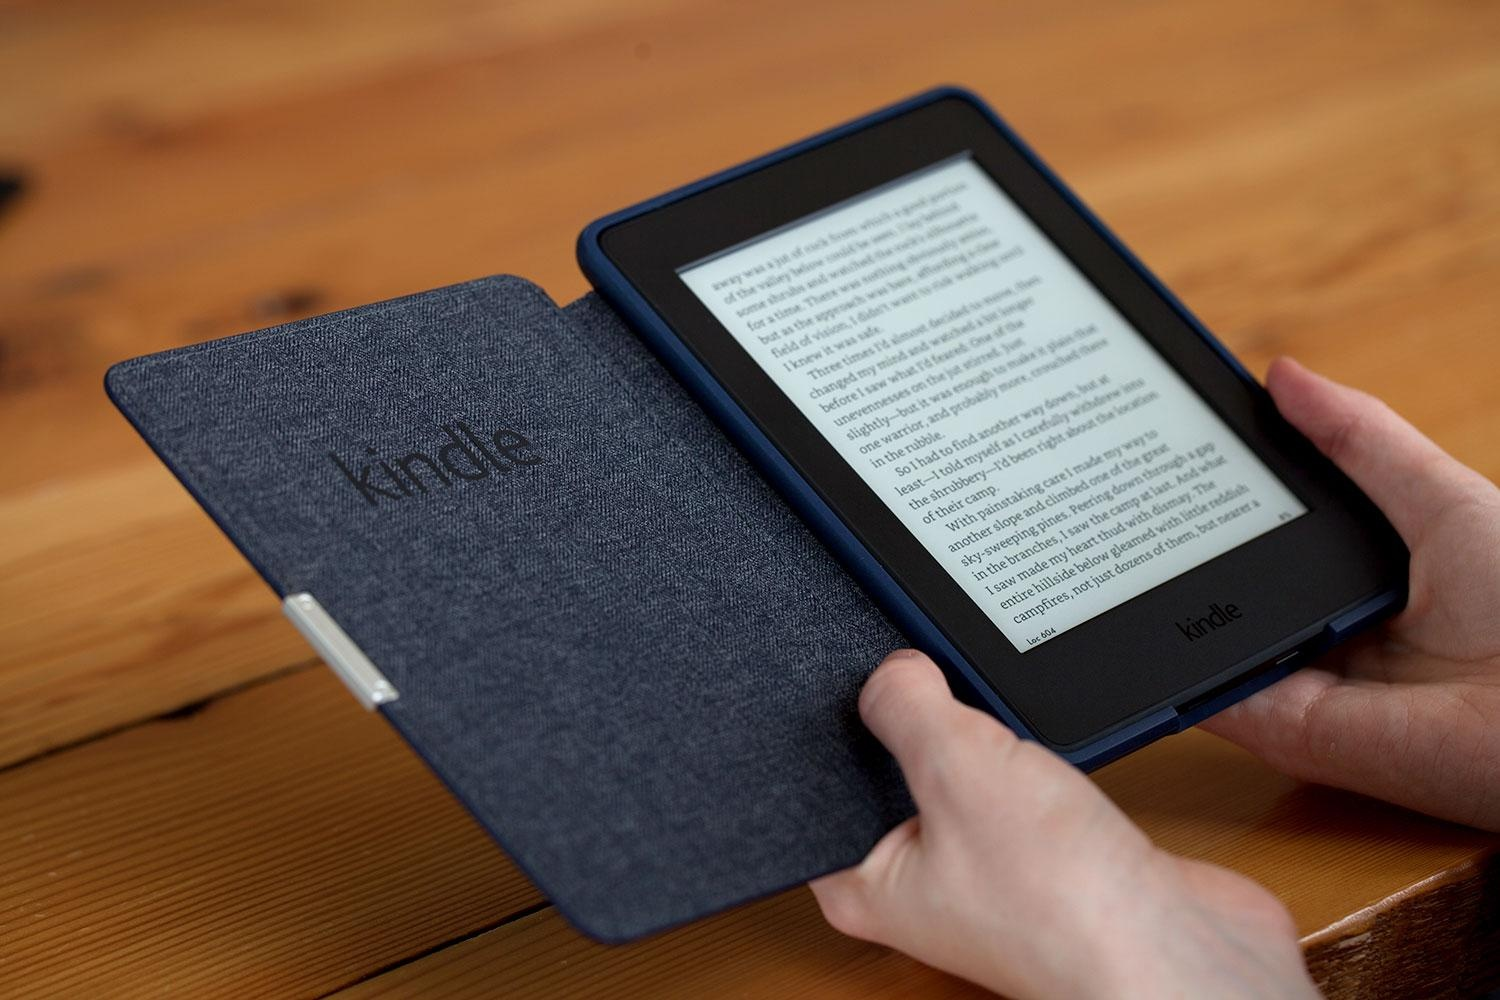 amazon-kindle-paperwhite-2015-in-hand-1500x1000